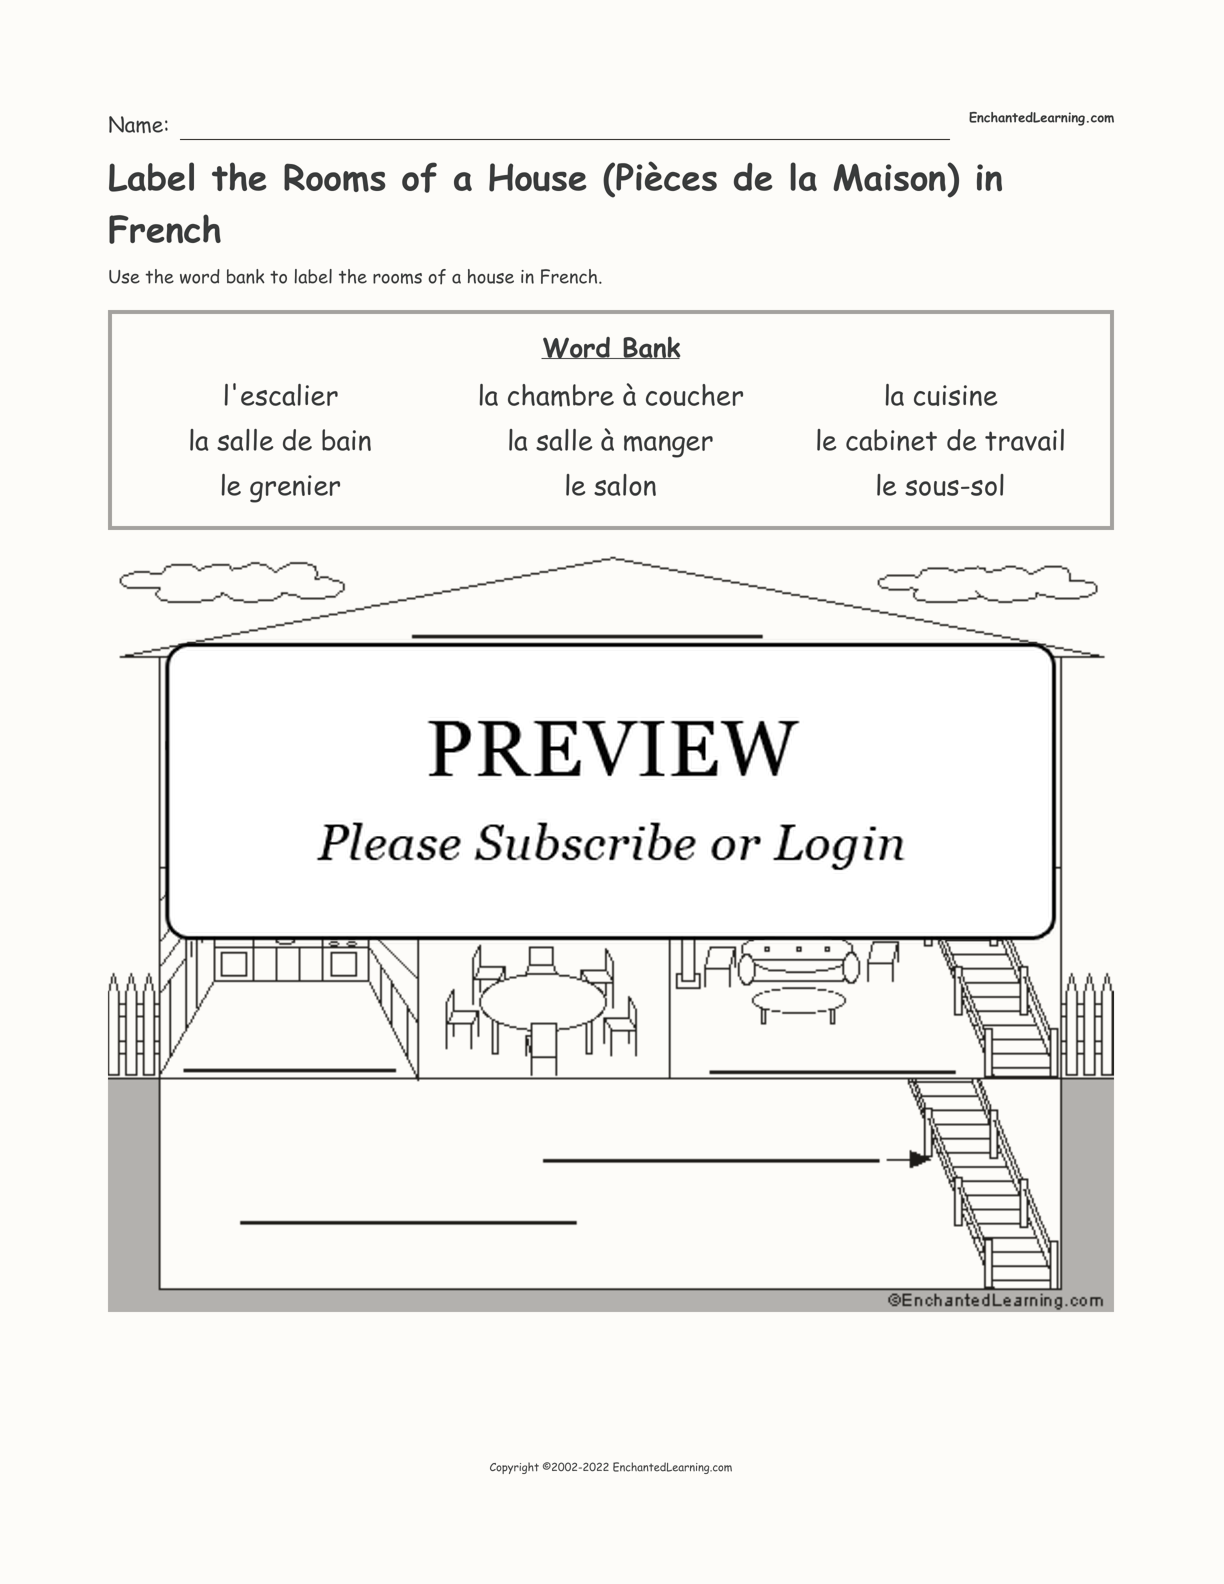 Label the Rooms of a House (Pièces de la Maison) in French interactive worksheet page 1